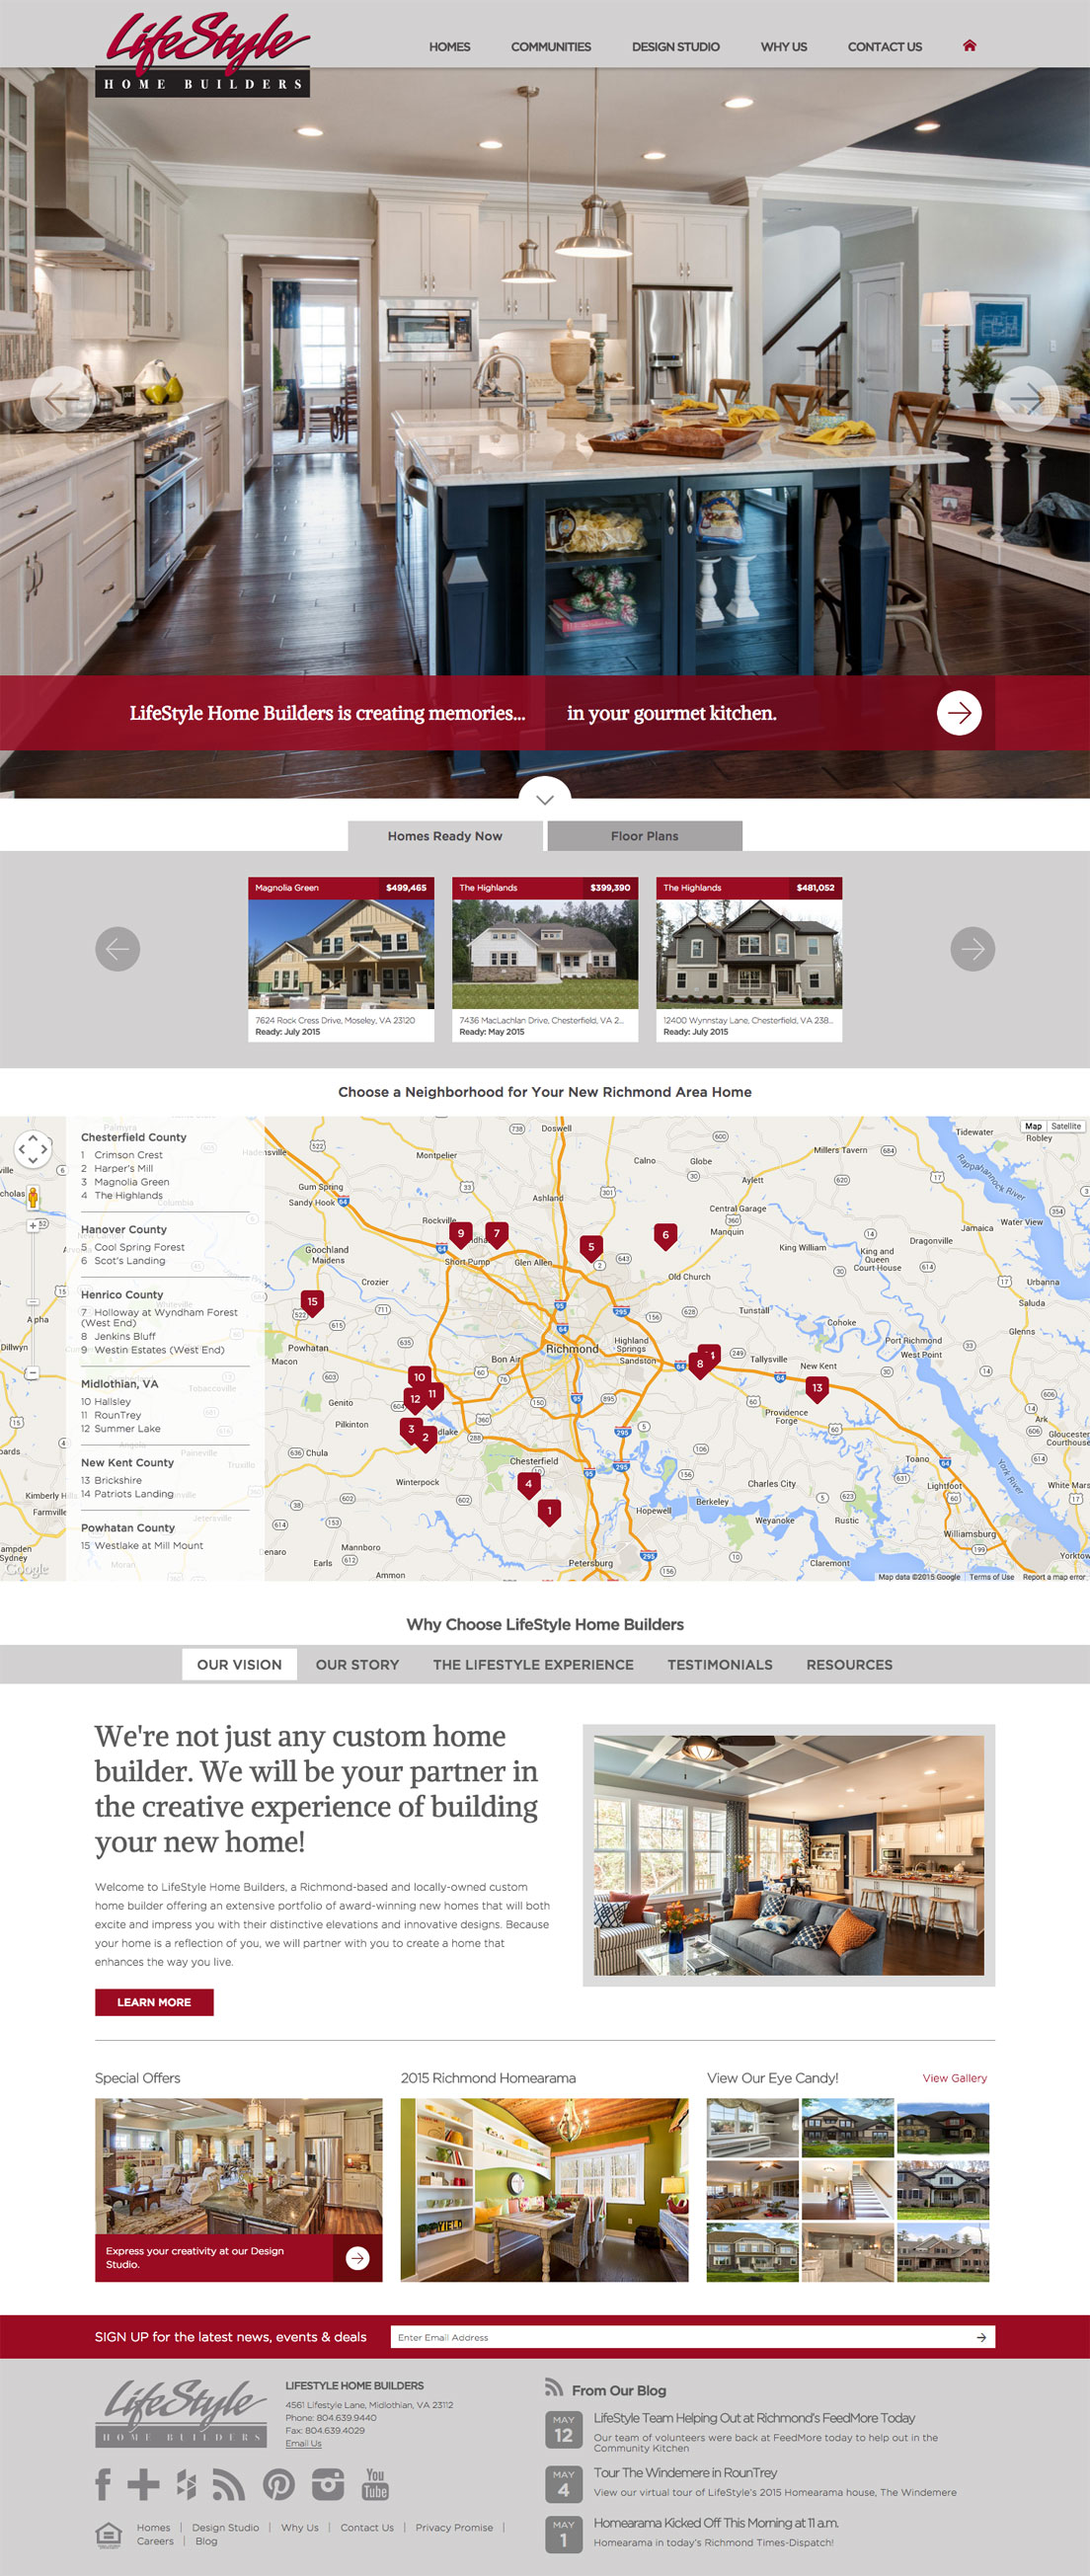 Lifestyle Home Builders Website Design Randall Branding